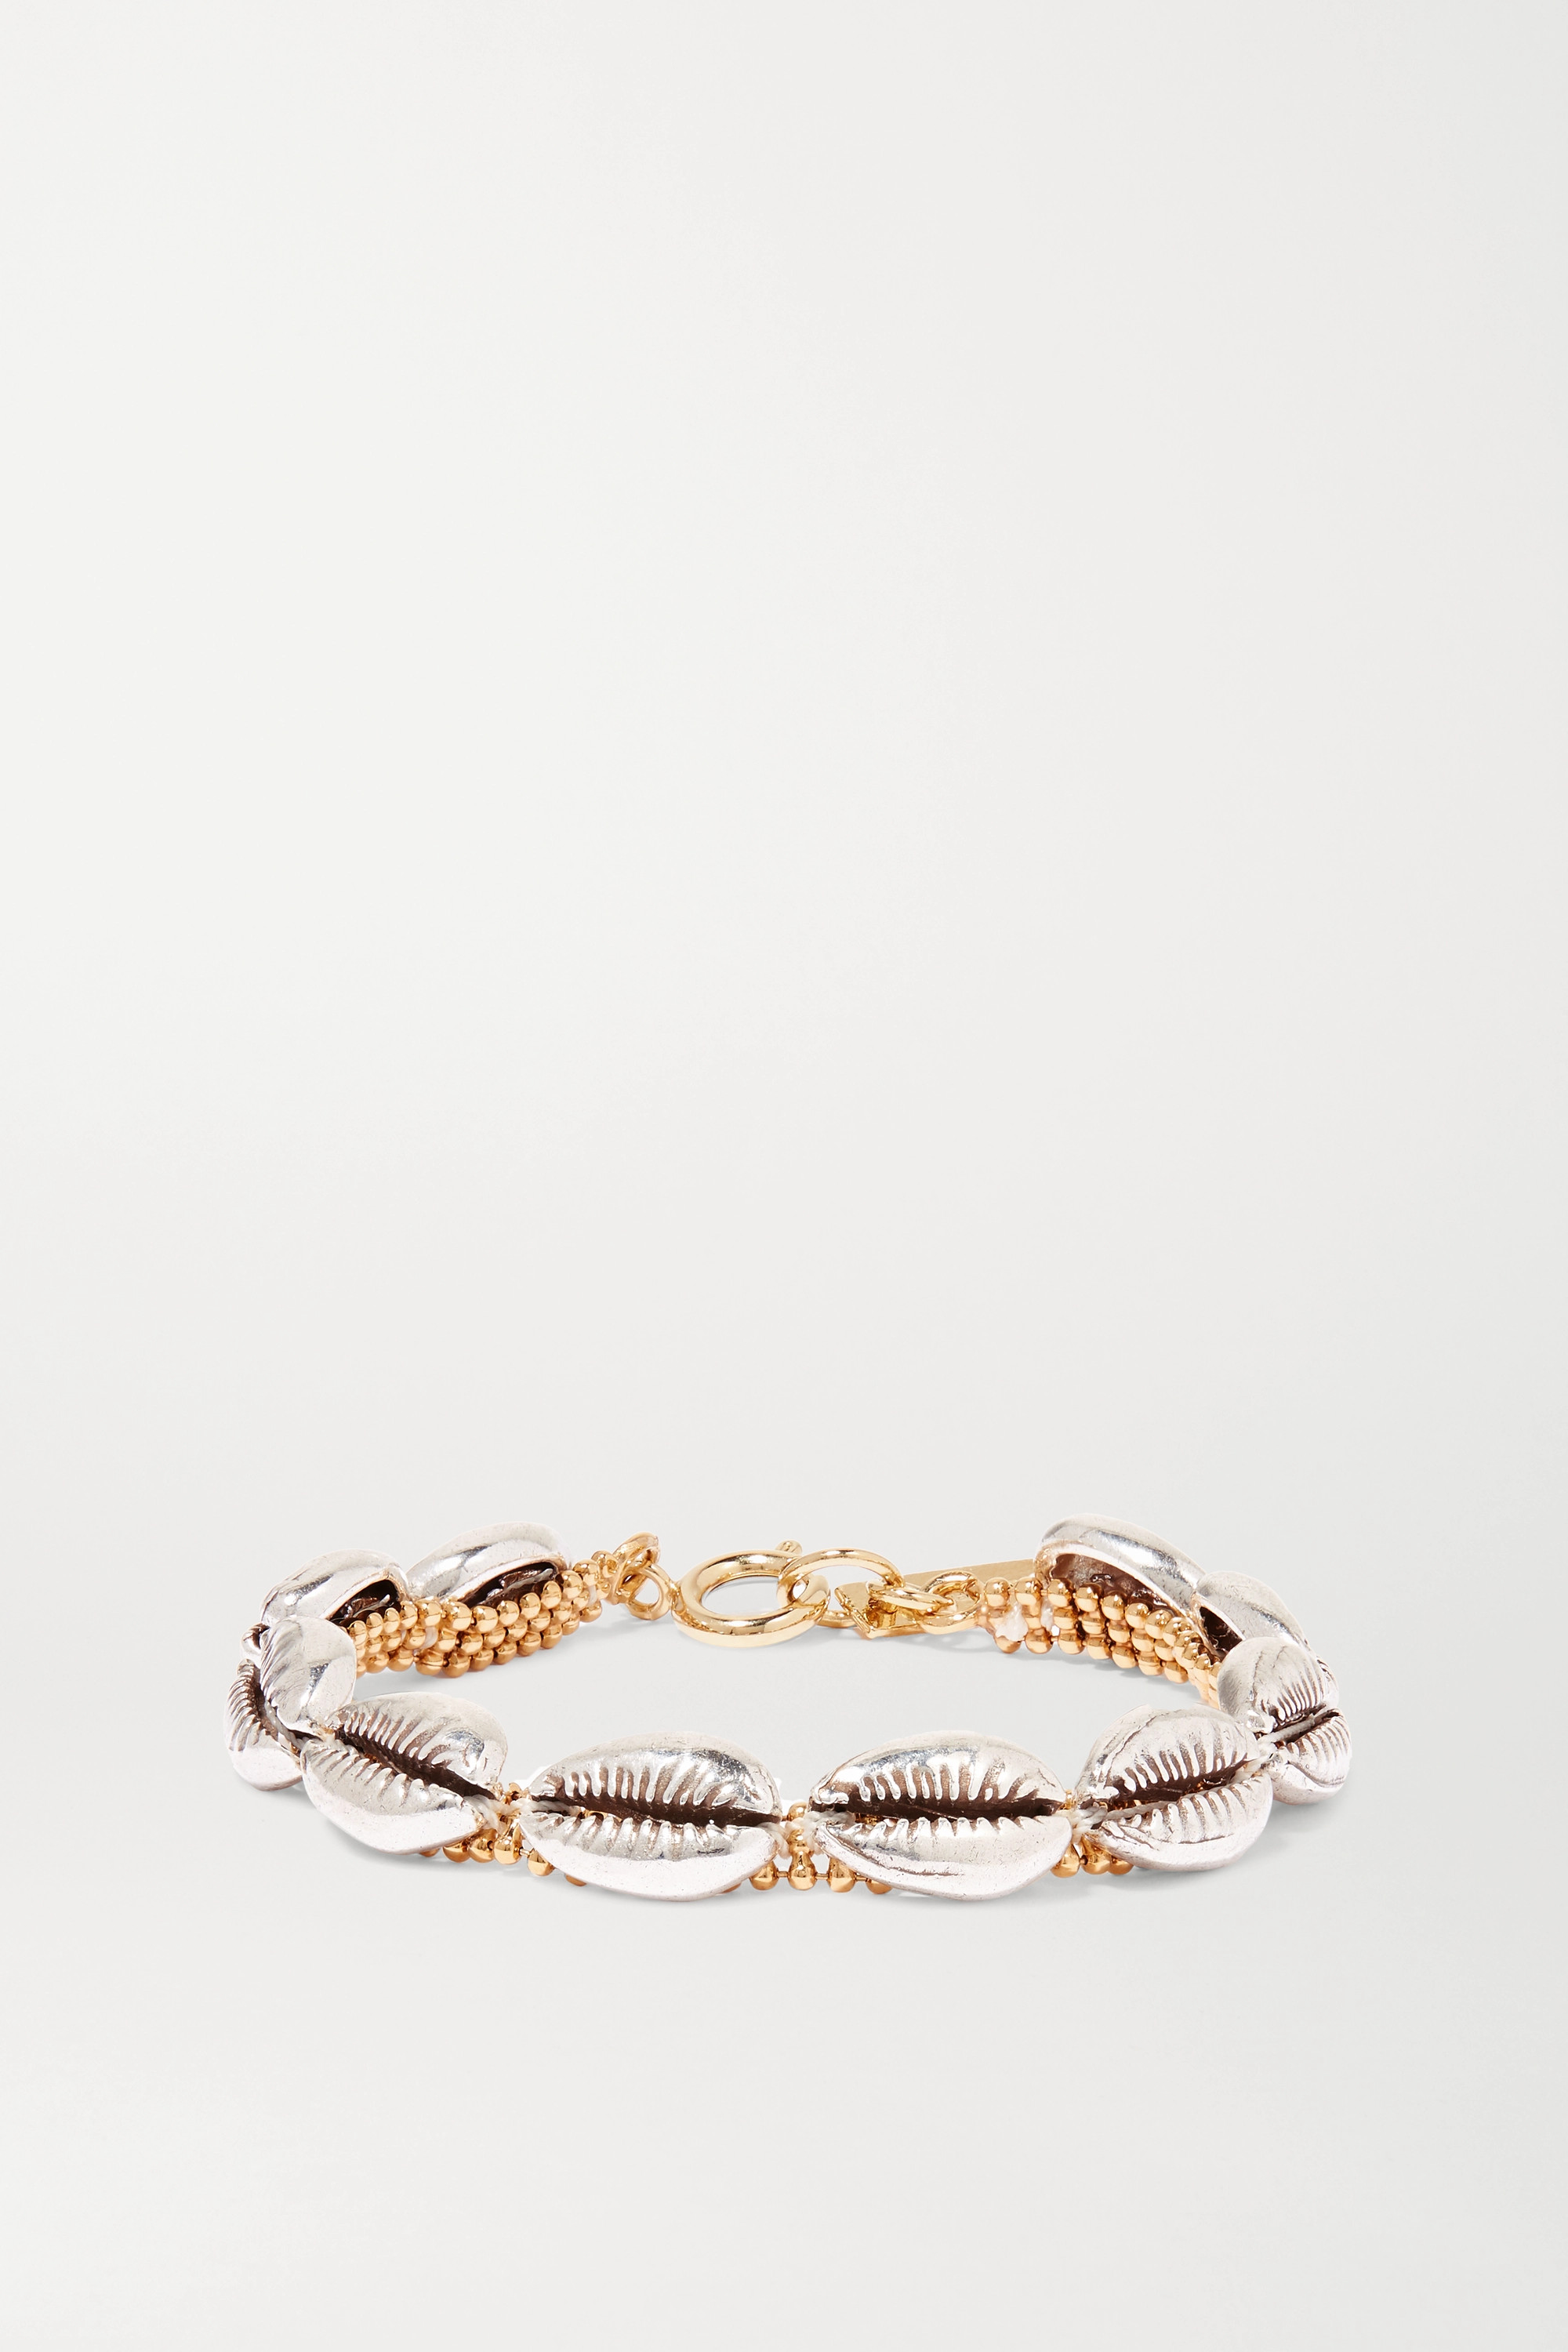 Isabel Marant New Pool silver and gold-tone bracelet